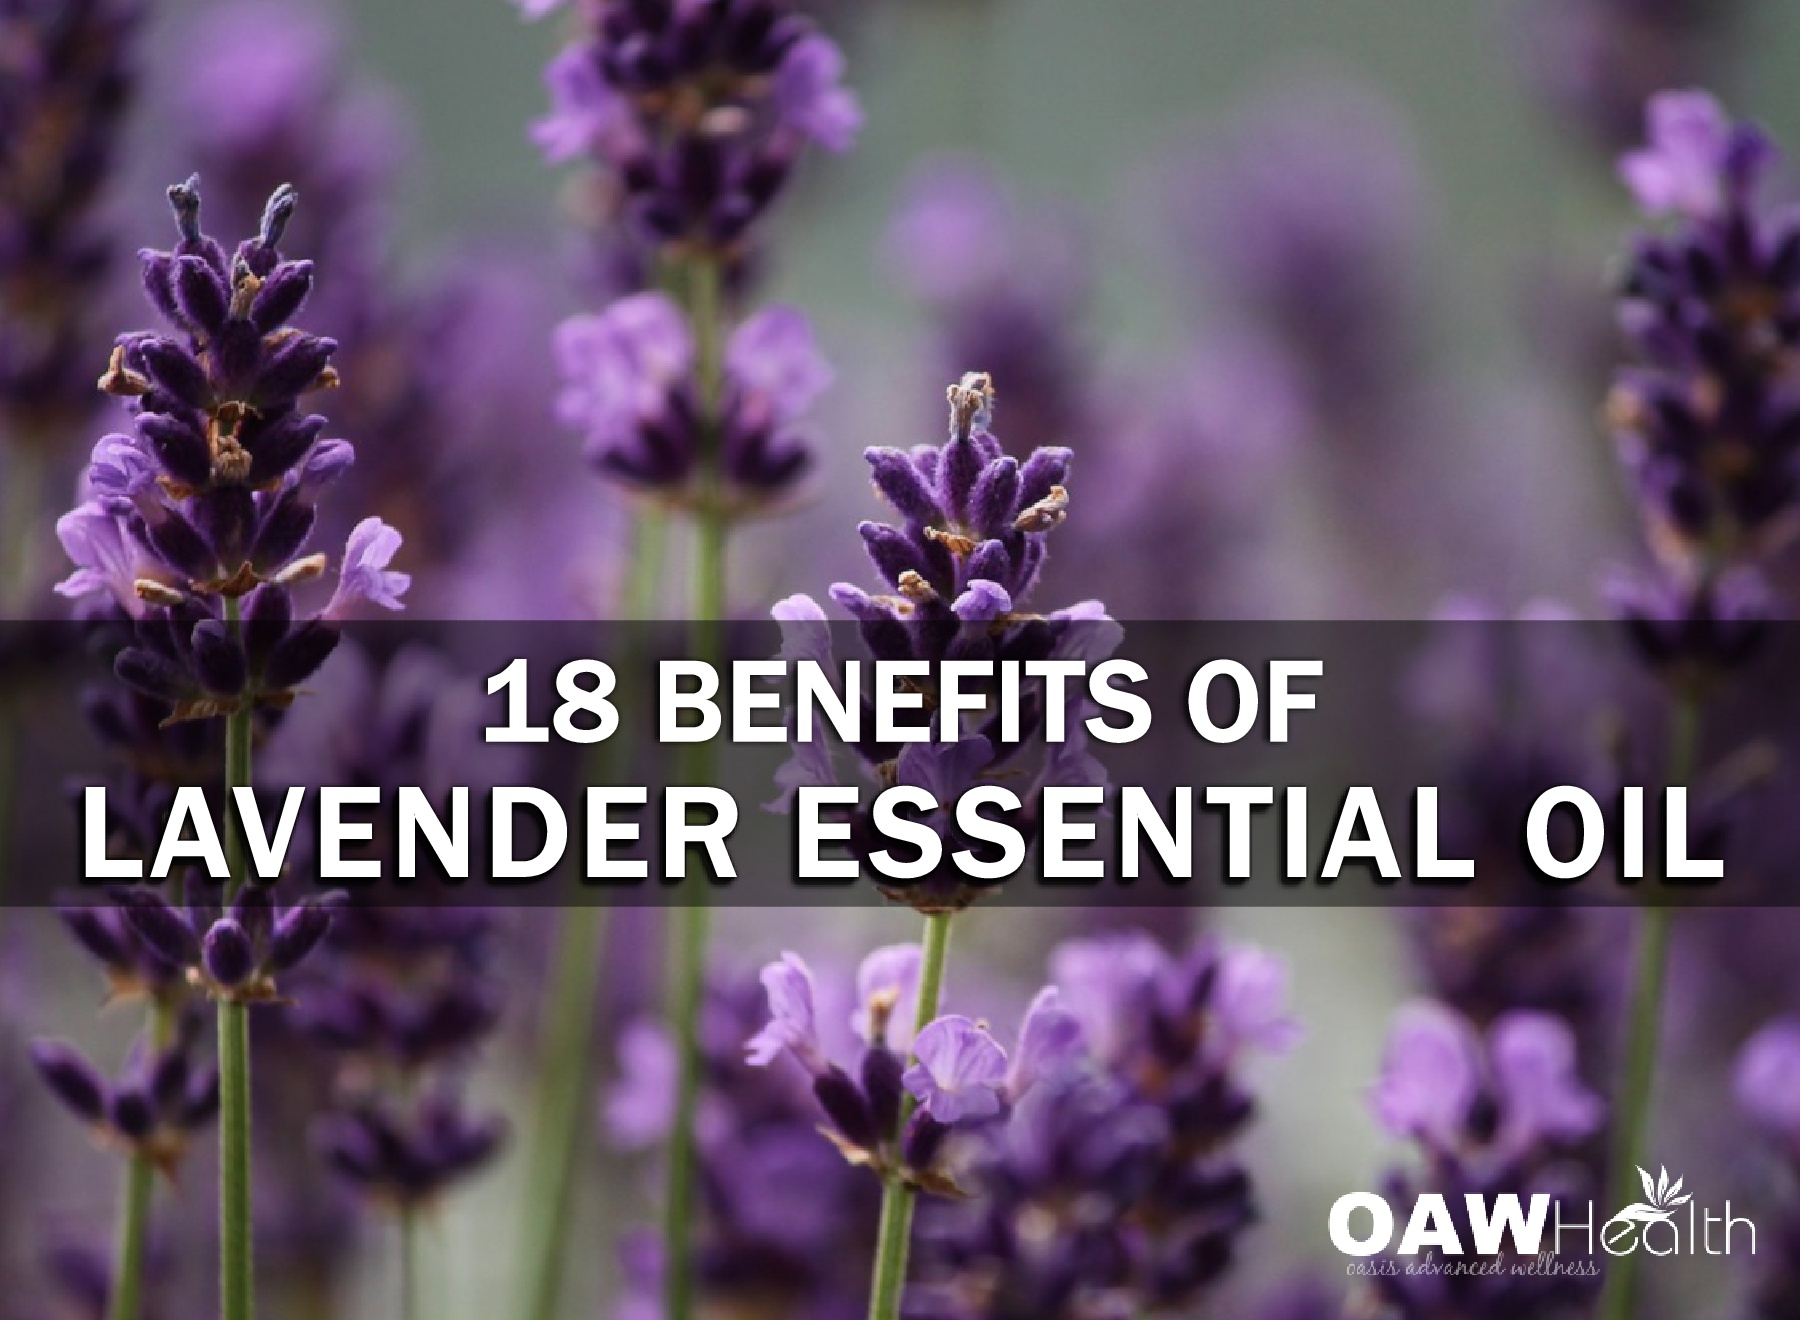 18 Benefits of Lavender Essential Oil